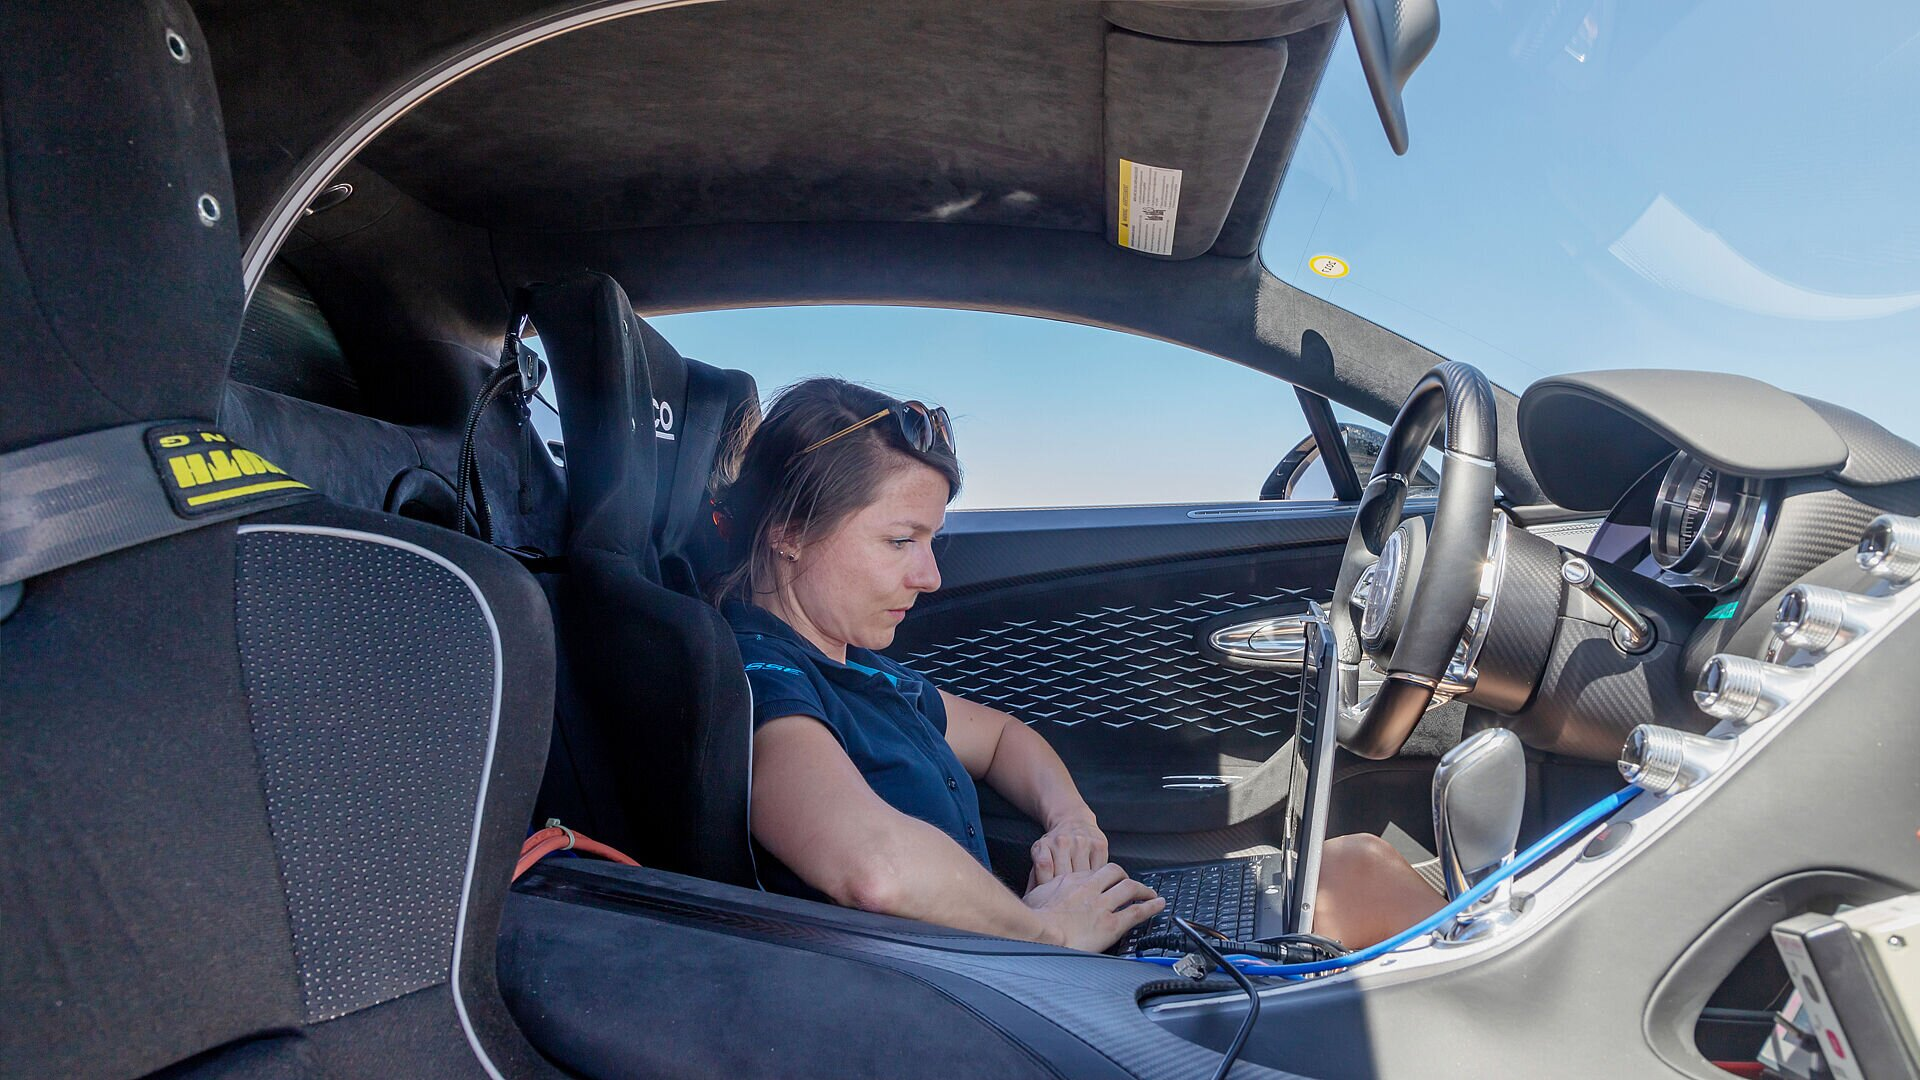 Because of the high engine speed in Bugatti hyper sports cars, Julia Lemke must ensure, among other things, that the air conditioning compressor functions properly as an engine attachment during test drives.